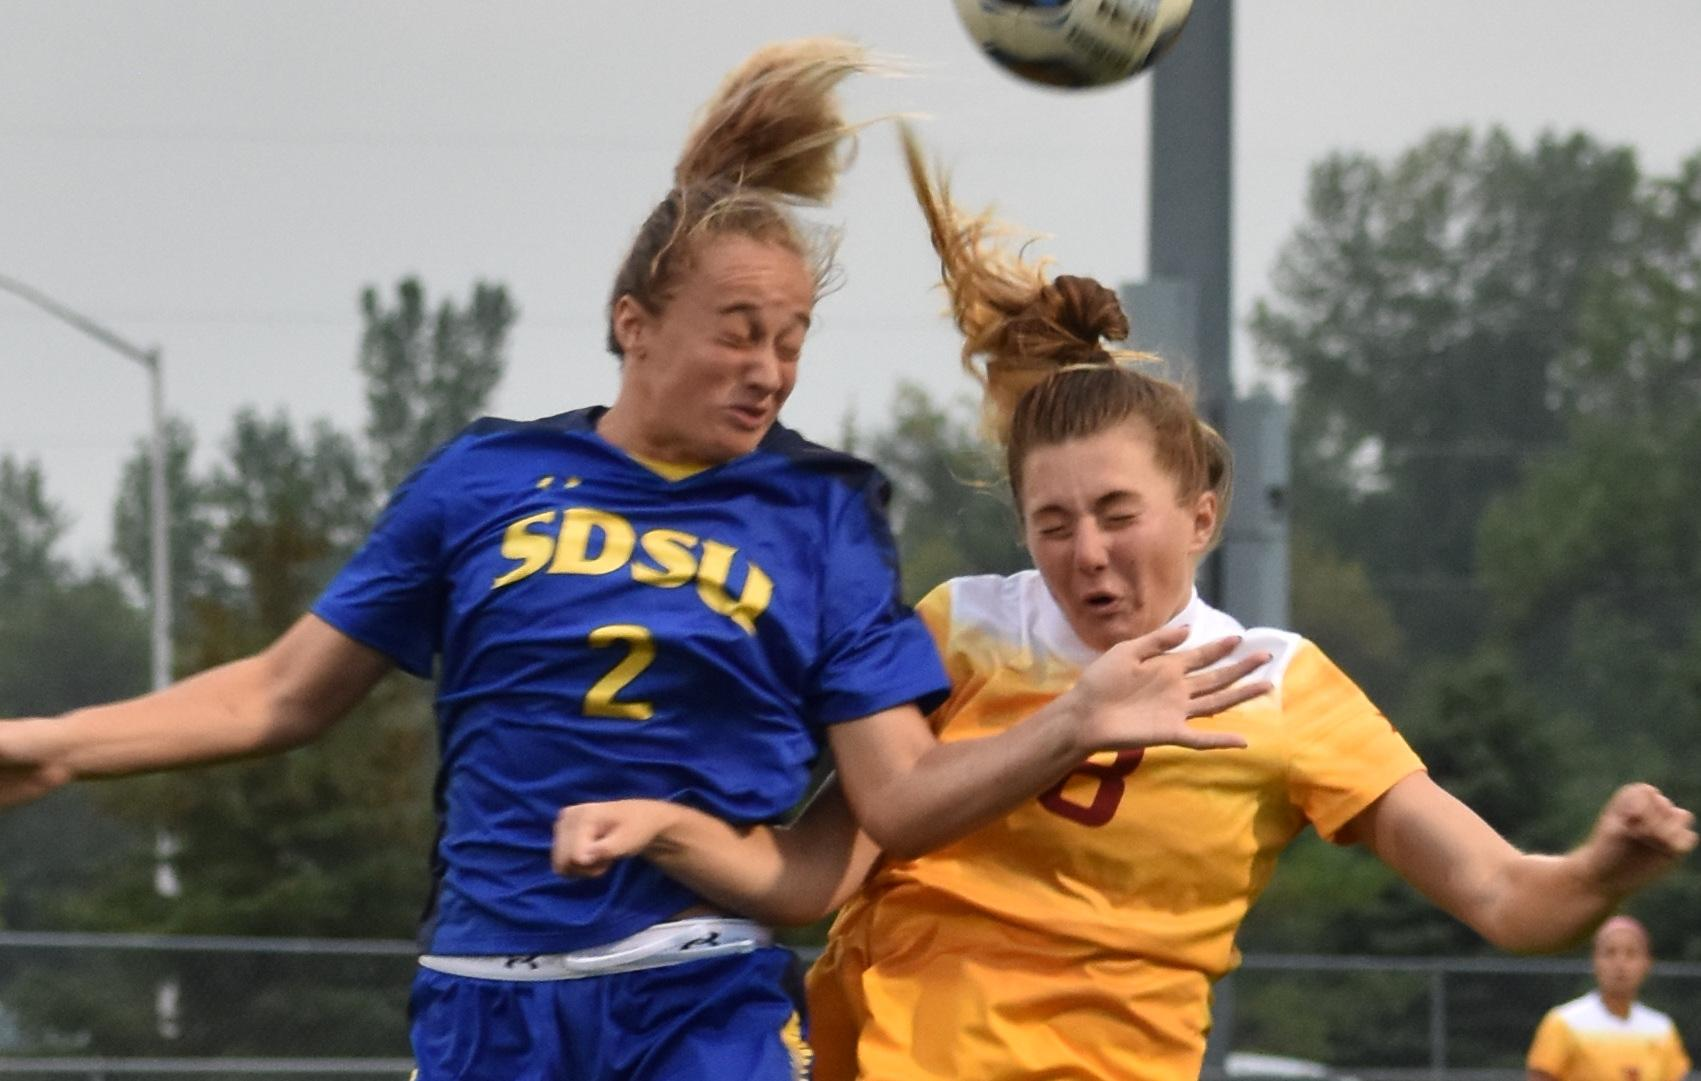 ABBY FULLENKAMP Kyli Nelson (2) goes to head-butt the ball blocking Iowa State University midfielder Anna Frerichs (8) during the game Sept. 1. The South Dakota State soccer team has won five straight games and is 3-0 in the Summit League. They face the Fort Wayne Mastodons at 6 p.m. Thursday at Fishback Soccer Park. The Jacks are in second place in the Summit League with four games left in the regular season.